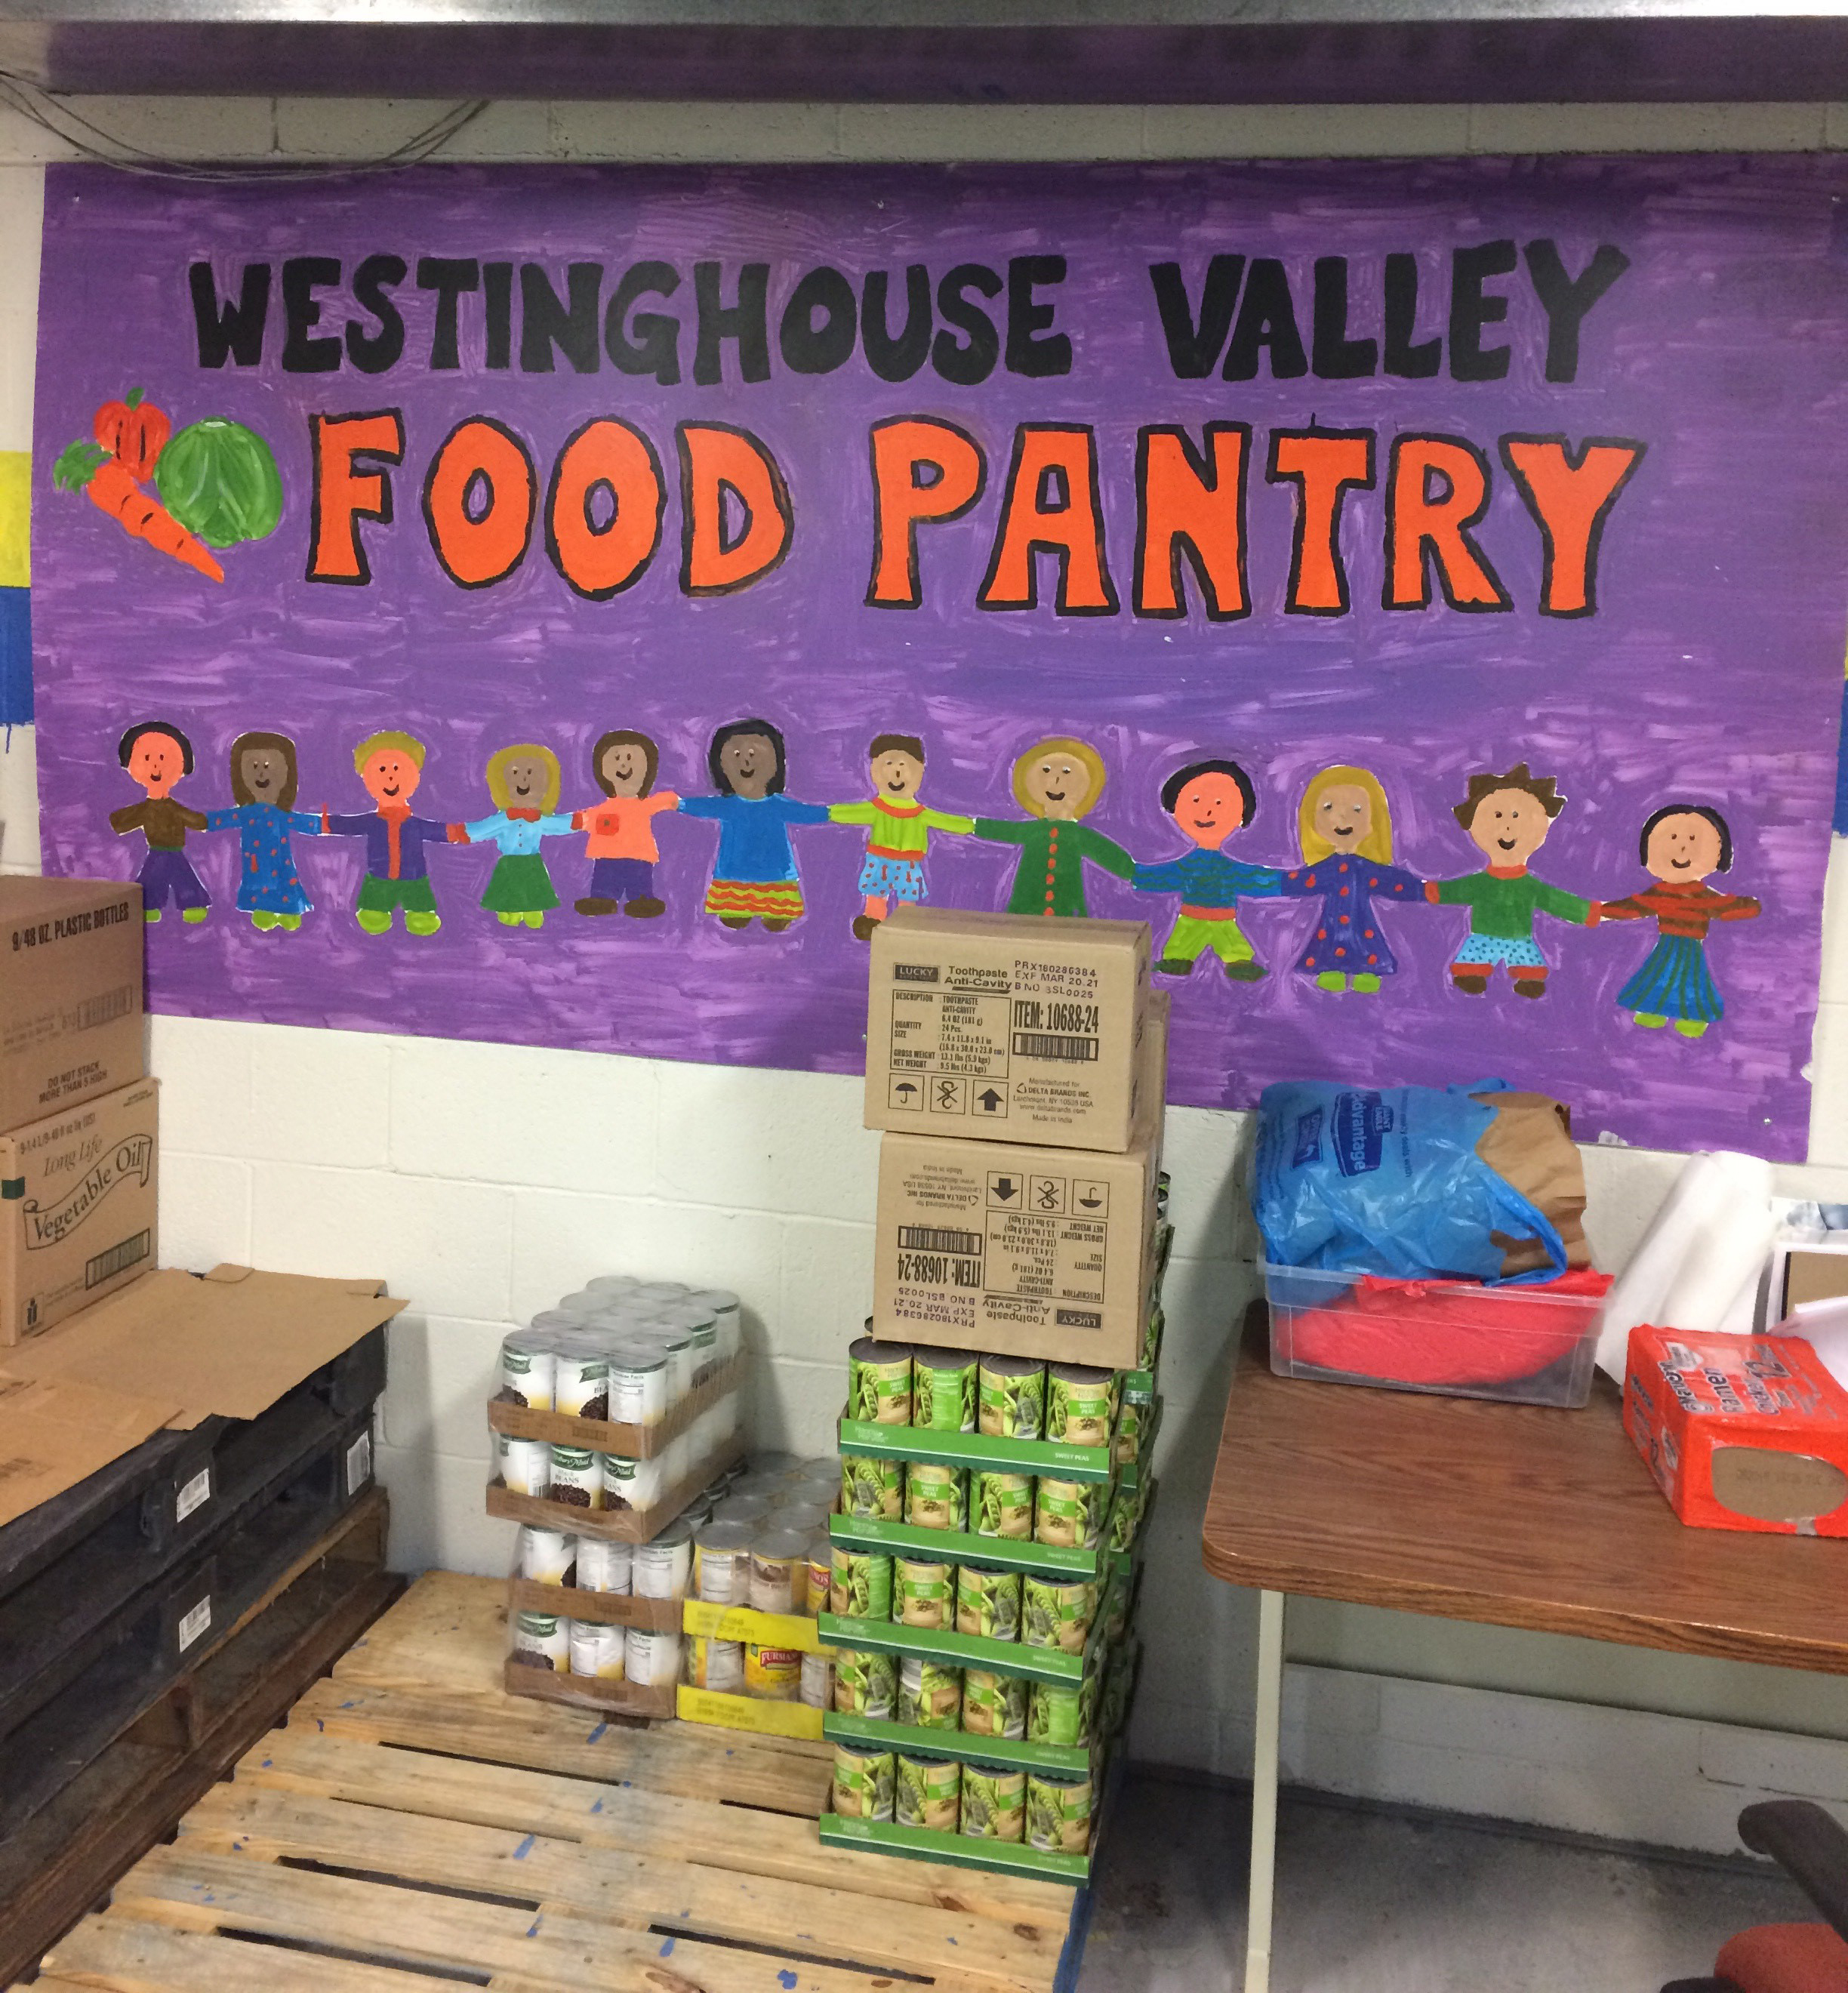 The Westinghouse Valley Food Pantry provides food assistance to families in our community.